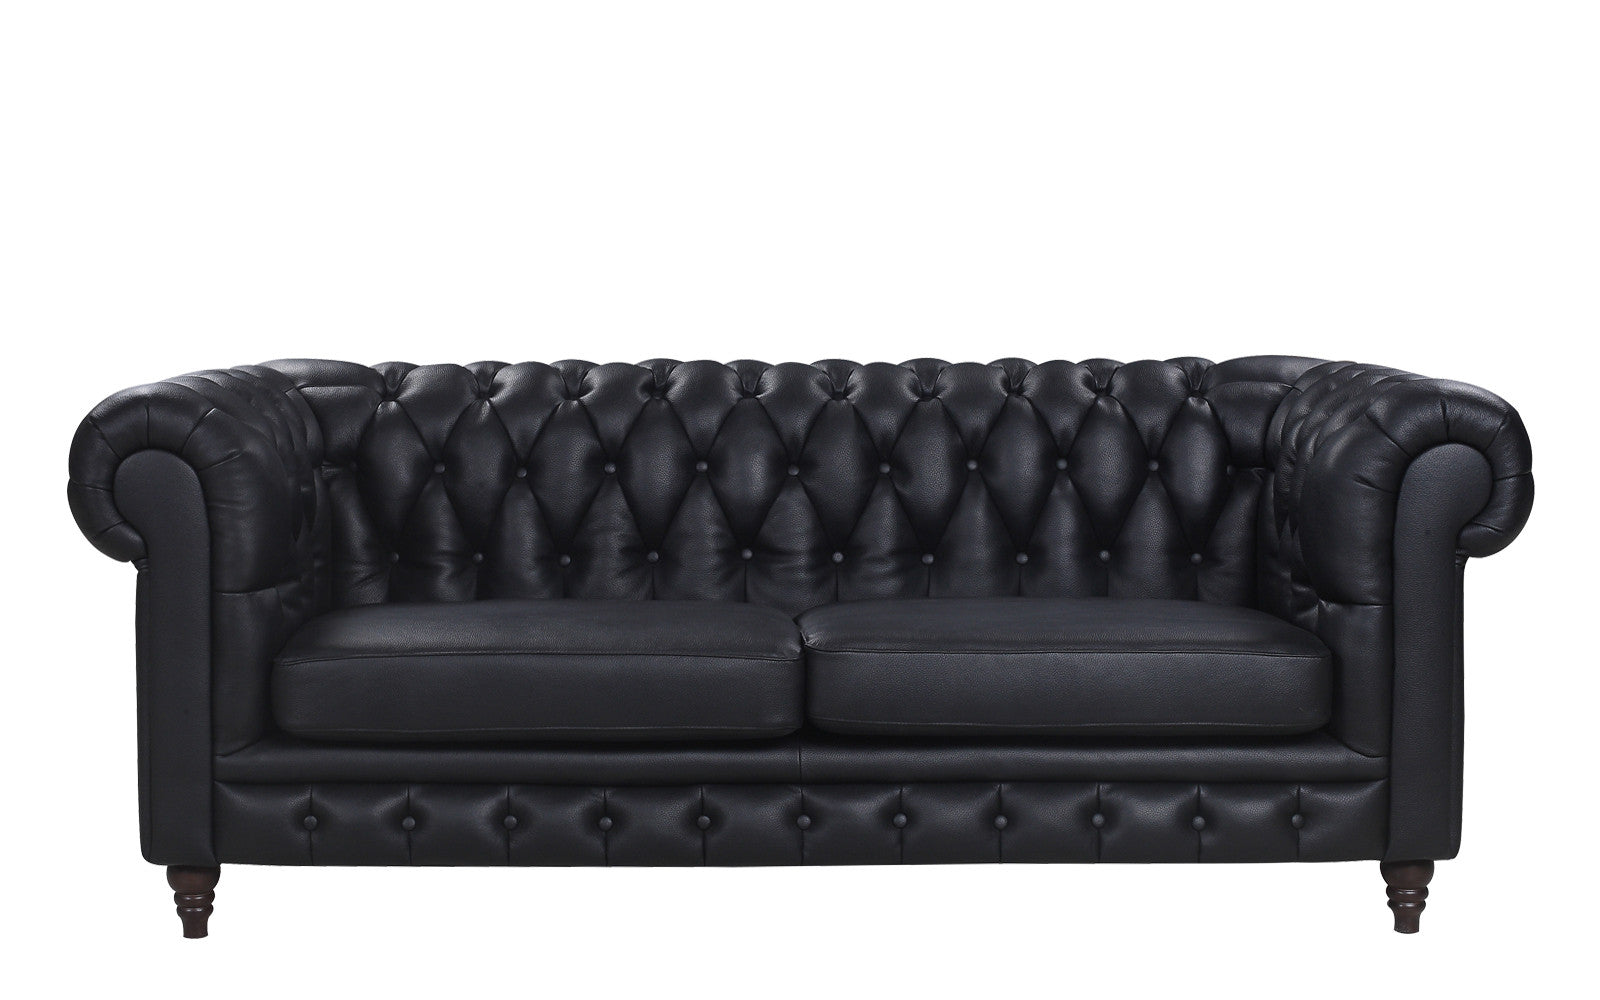 ... Crawley Leather Chesterfield Sofa In Black ...